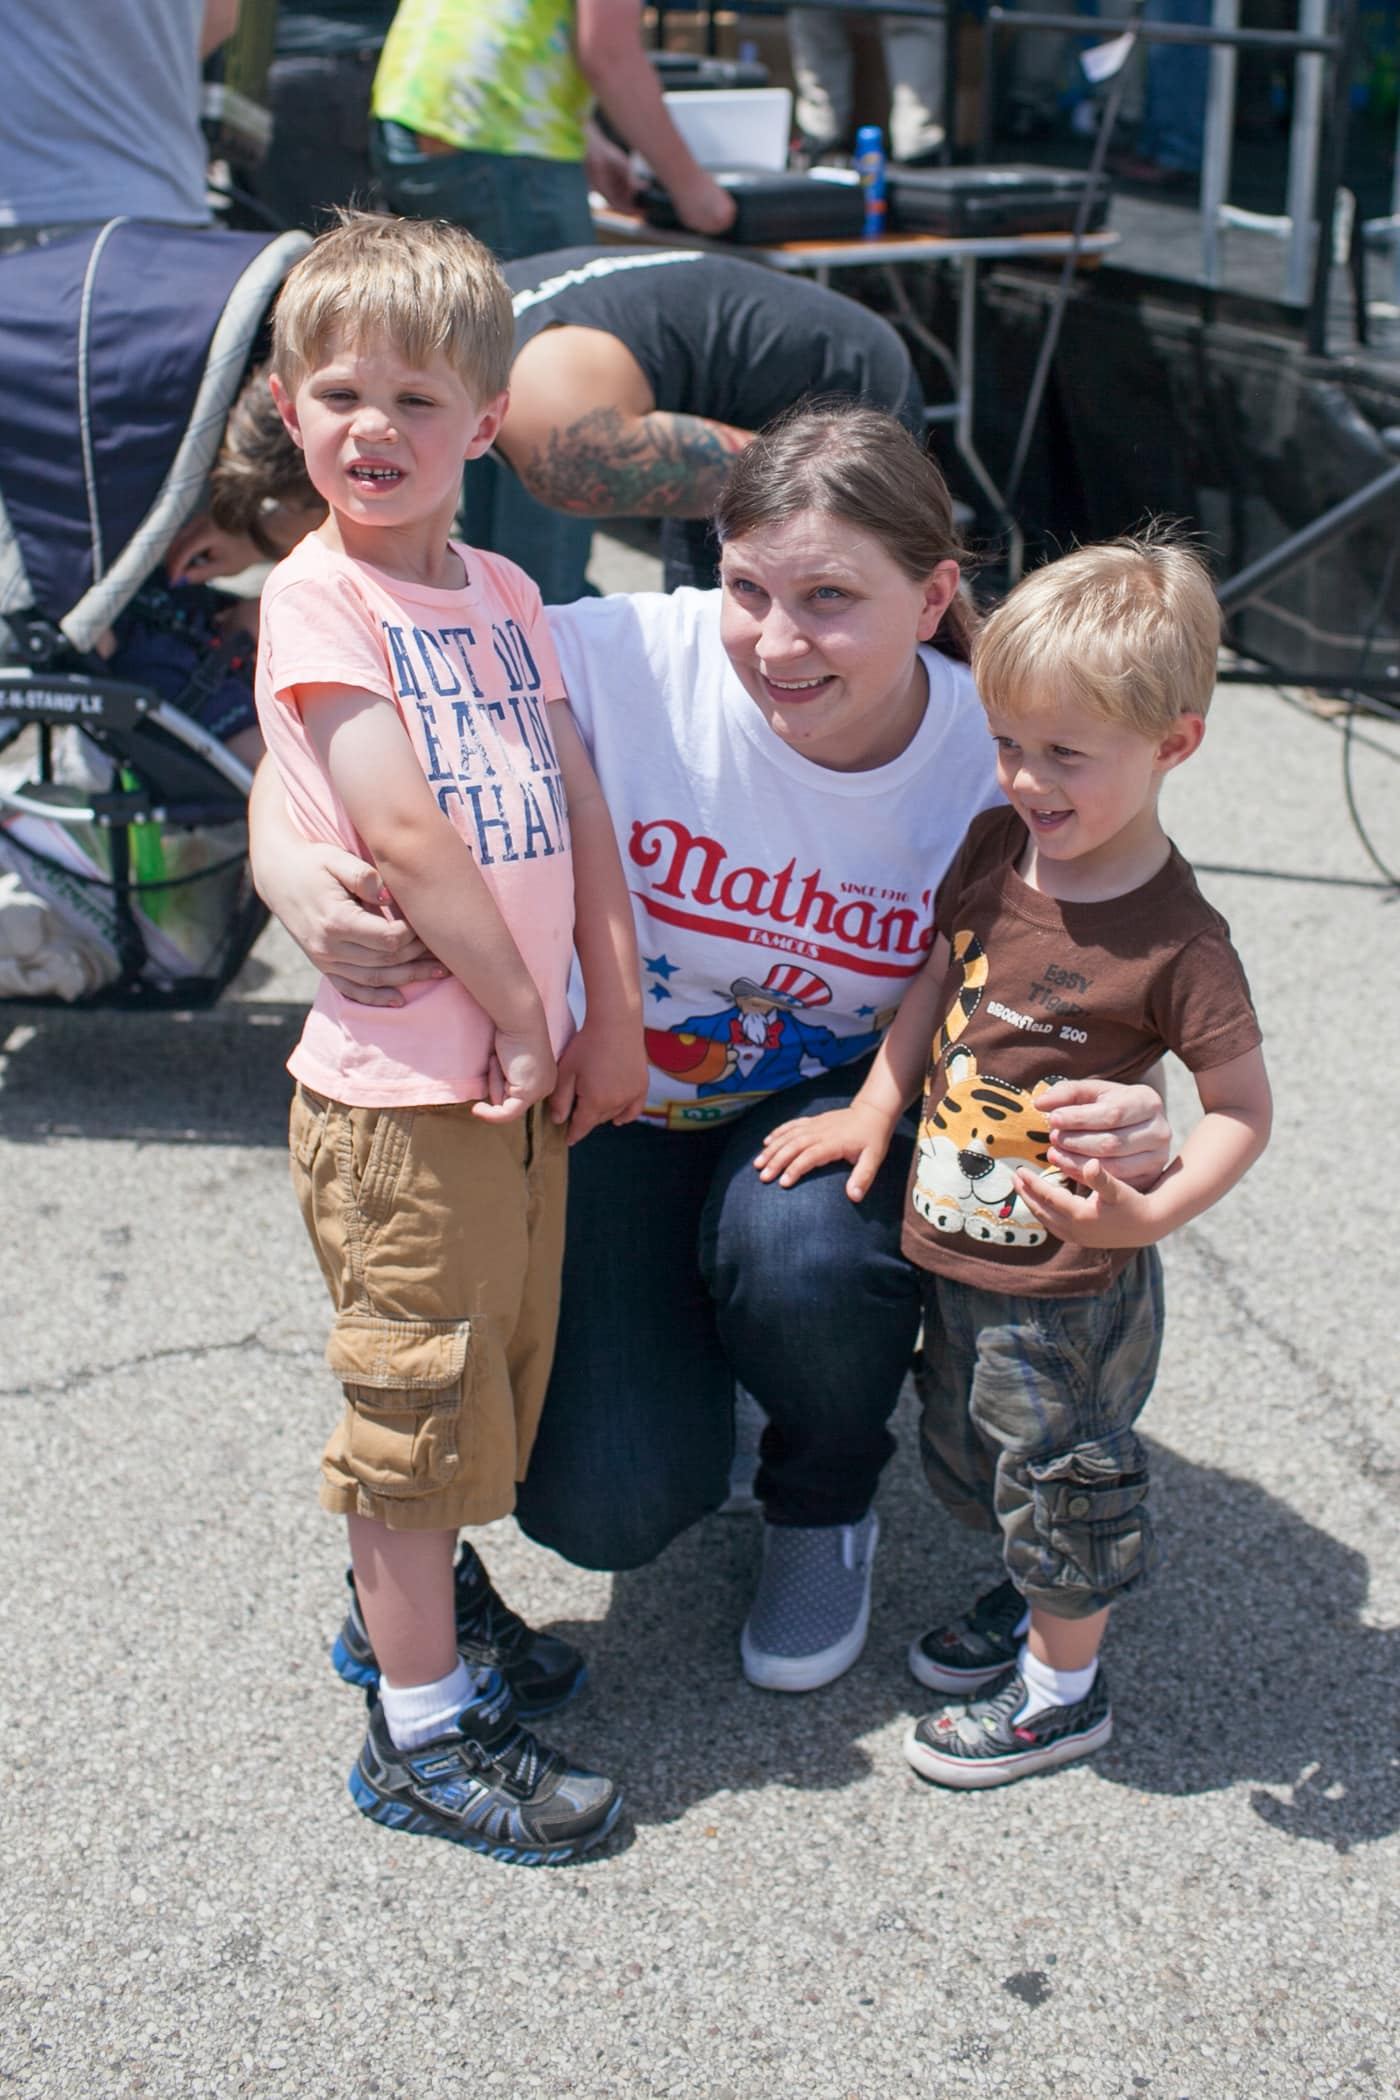 Val and her nephews at the hot dog eating contest at the Bloomingdale, Illinois, Kmart